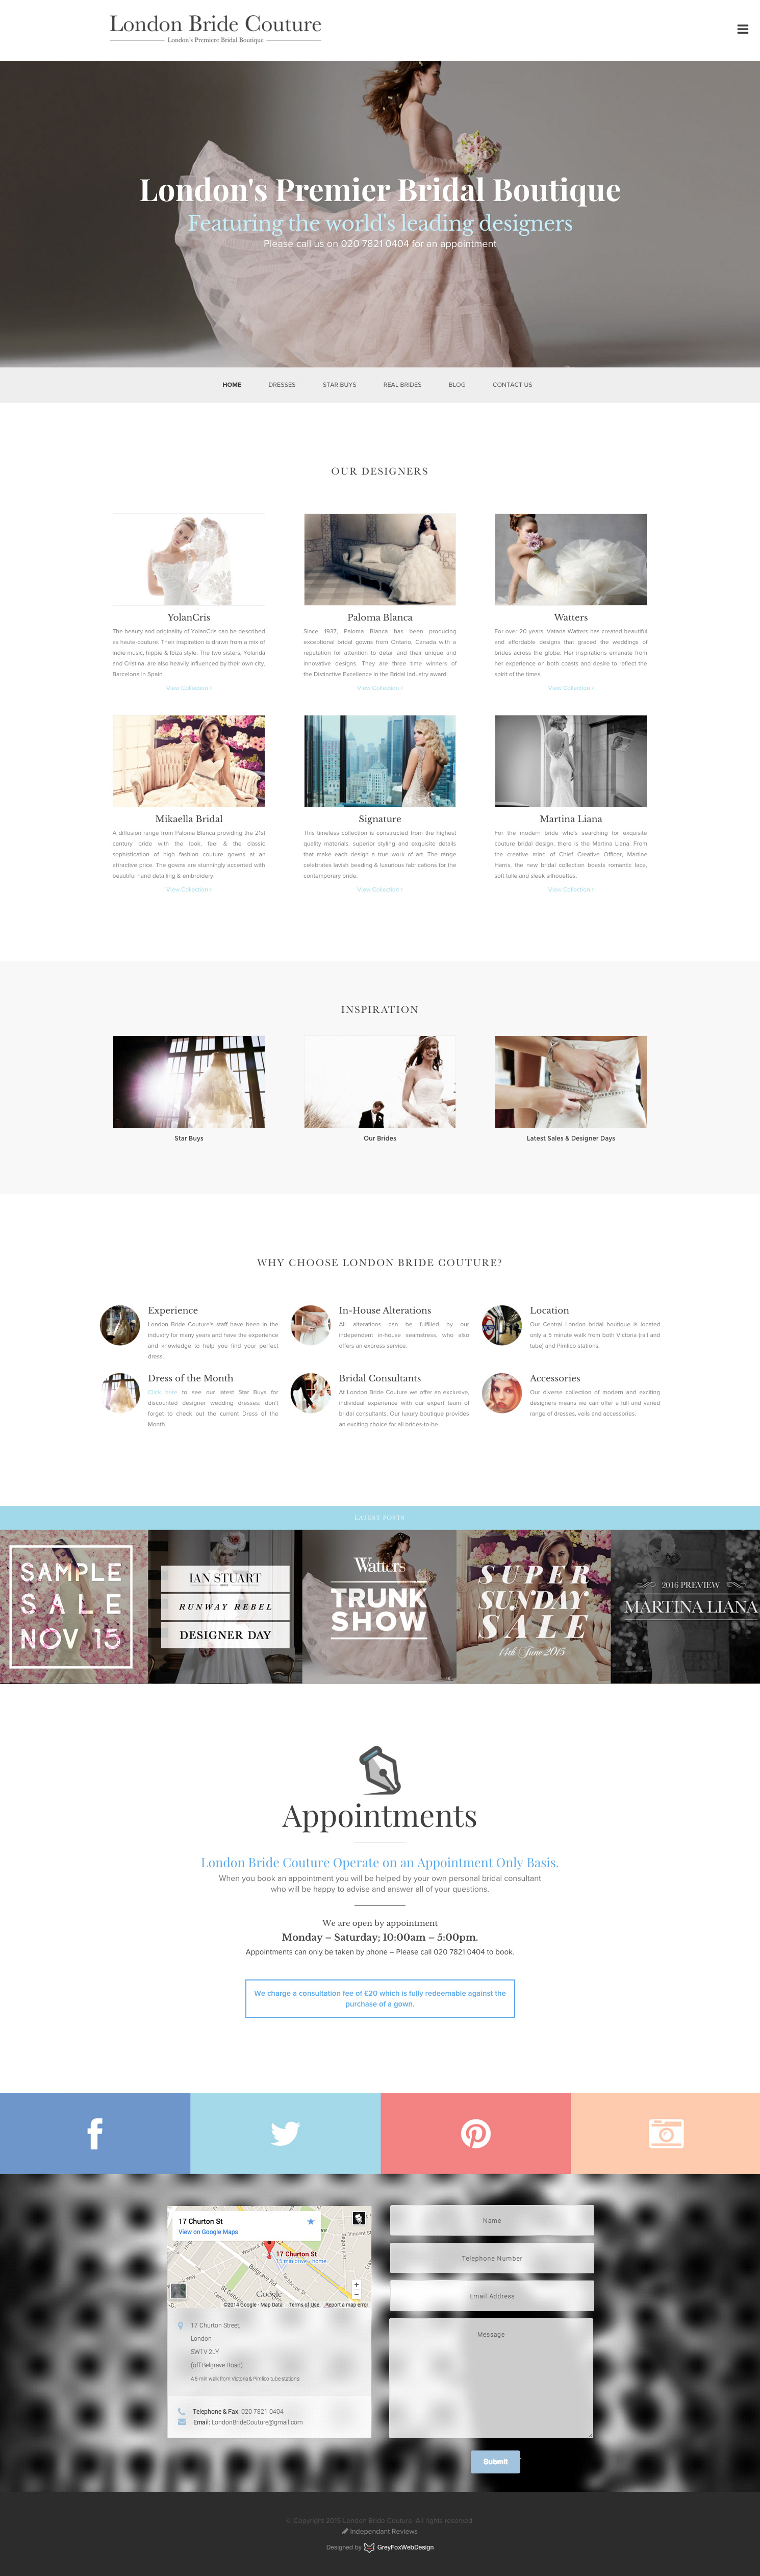 Wedding Website Design Company